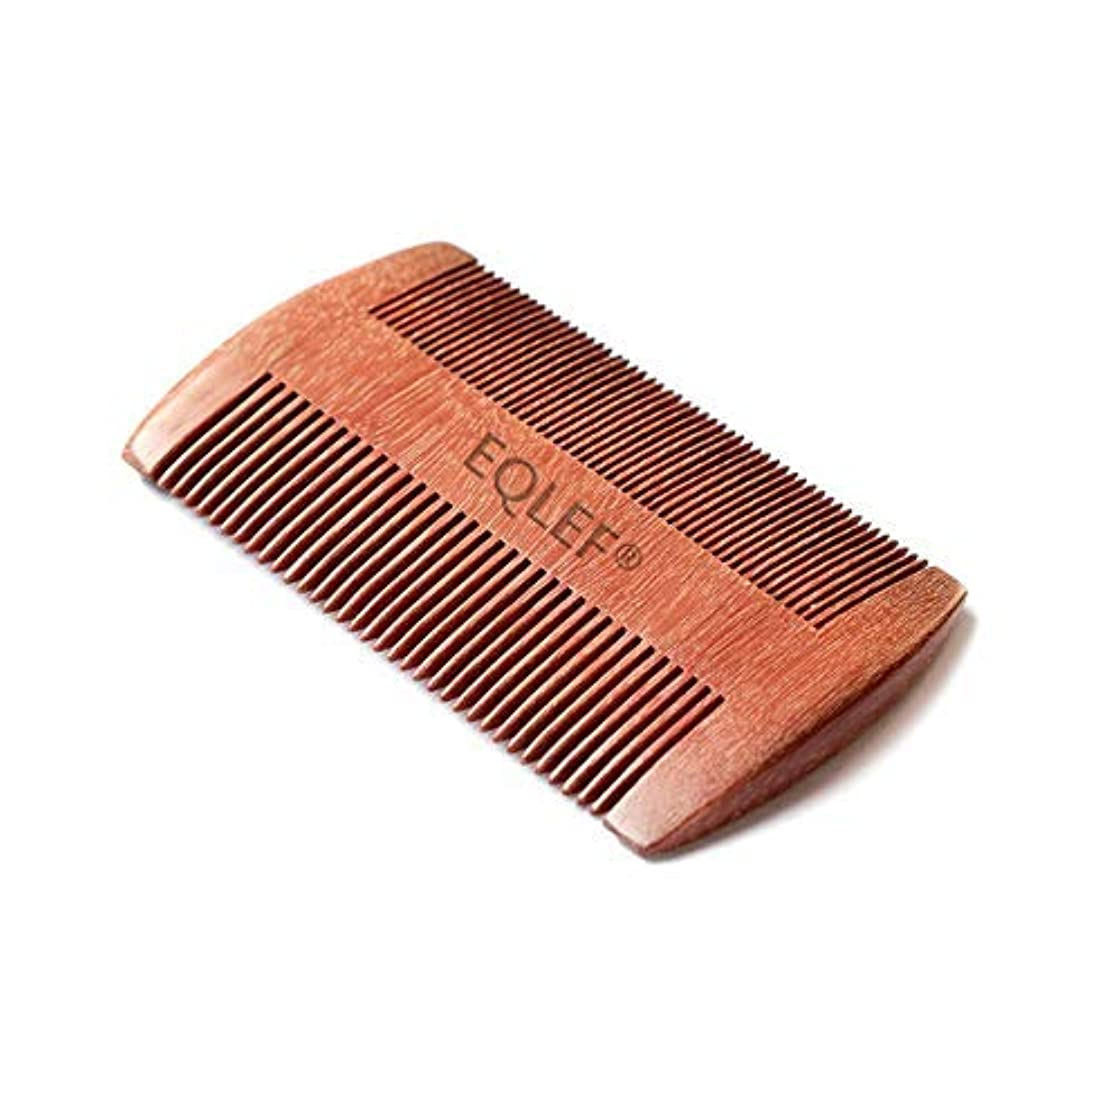 新着従順な例示するEQLEF? Red sandalwood no static handmade comb, Pocket comb (beard) [並行輸入品]